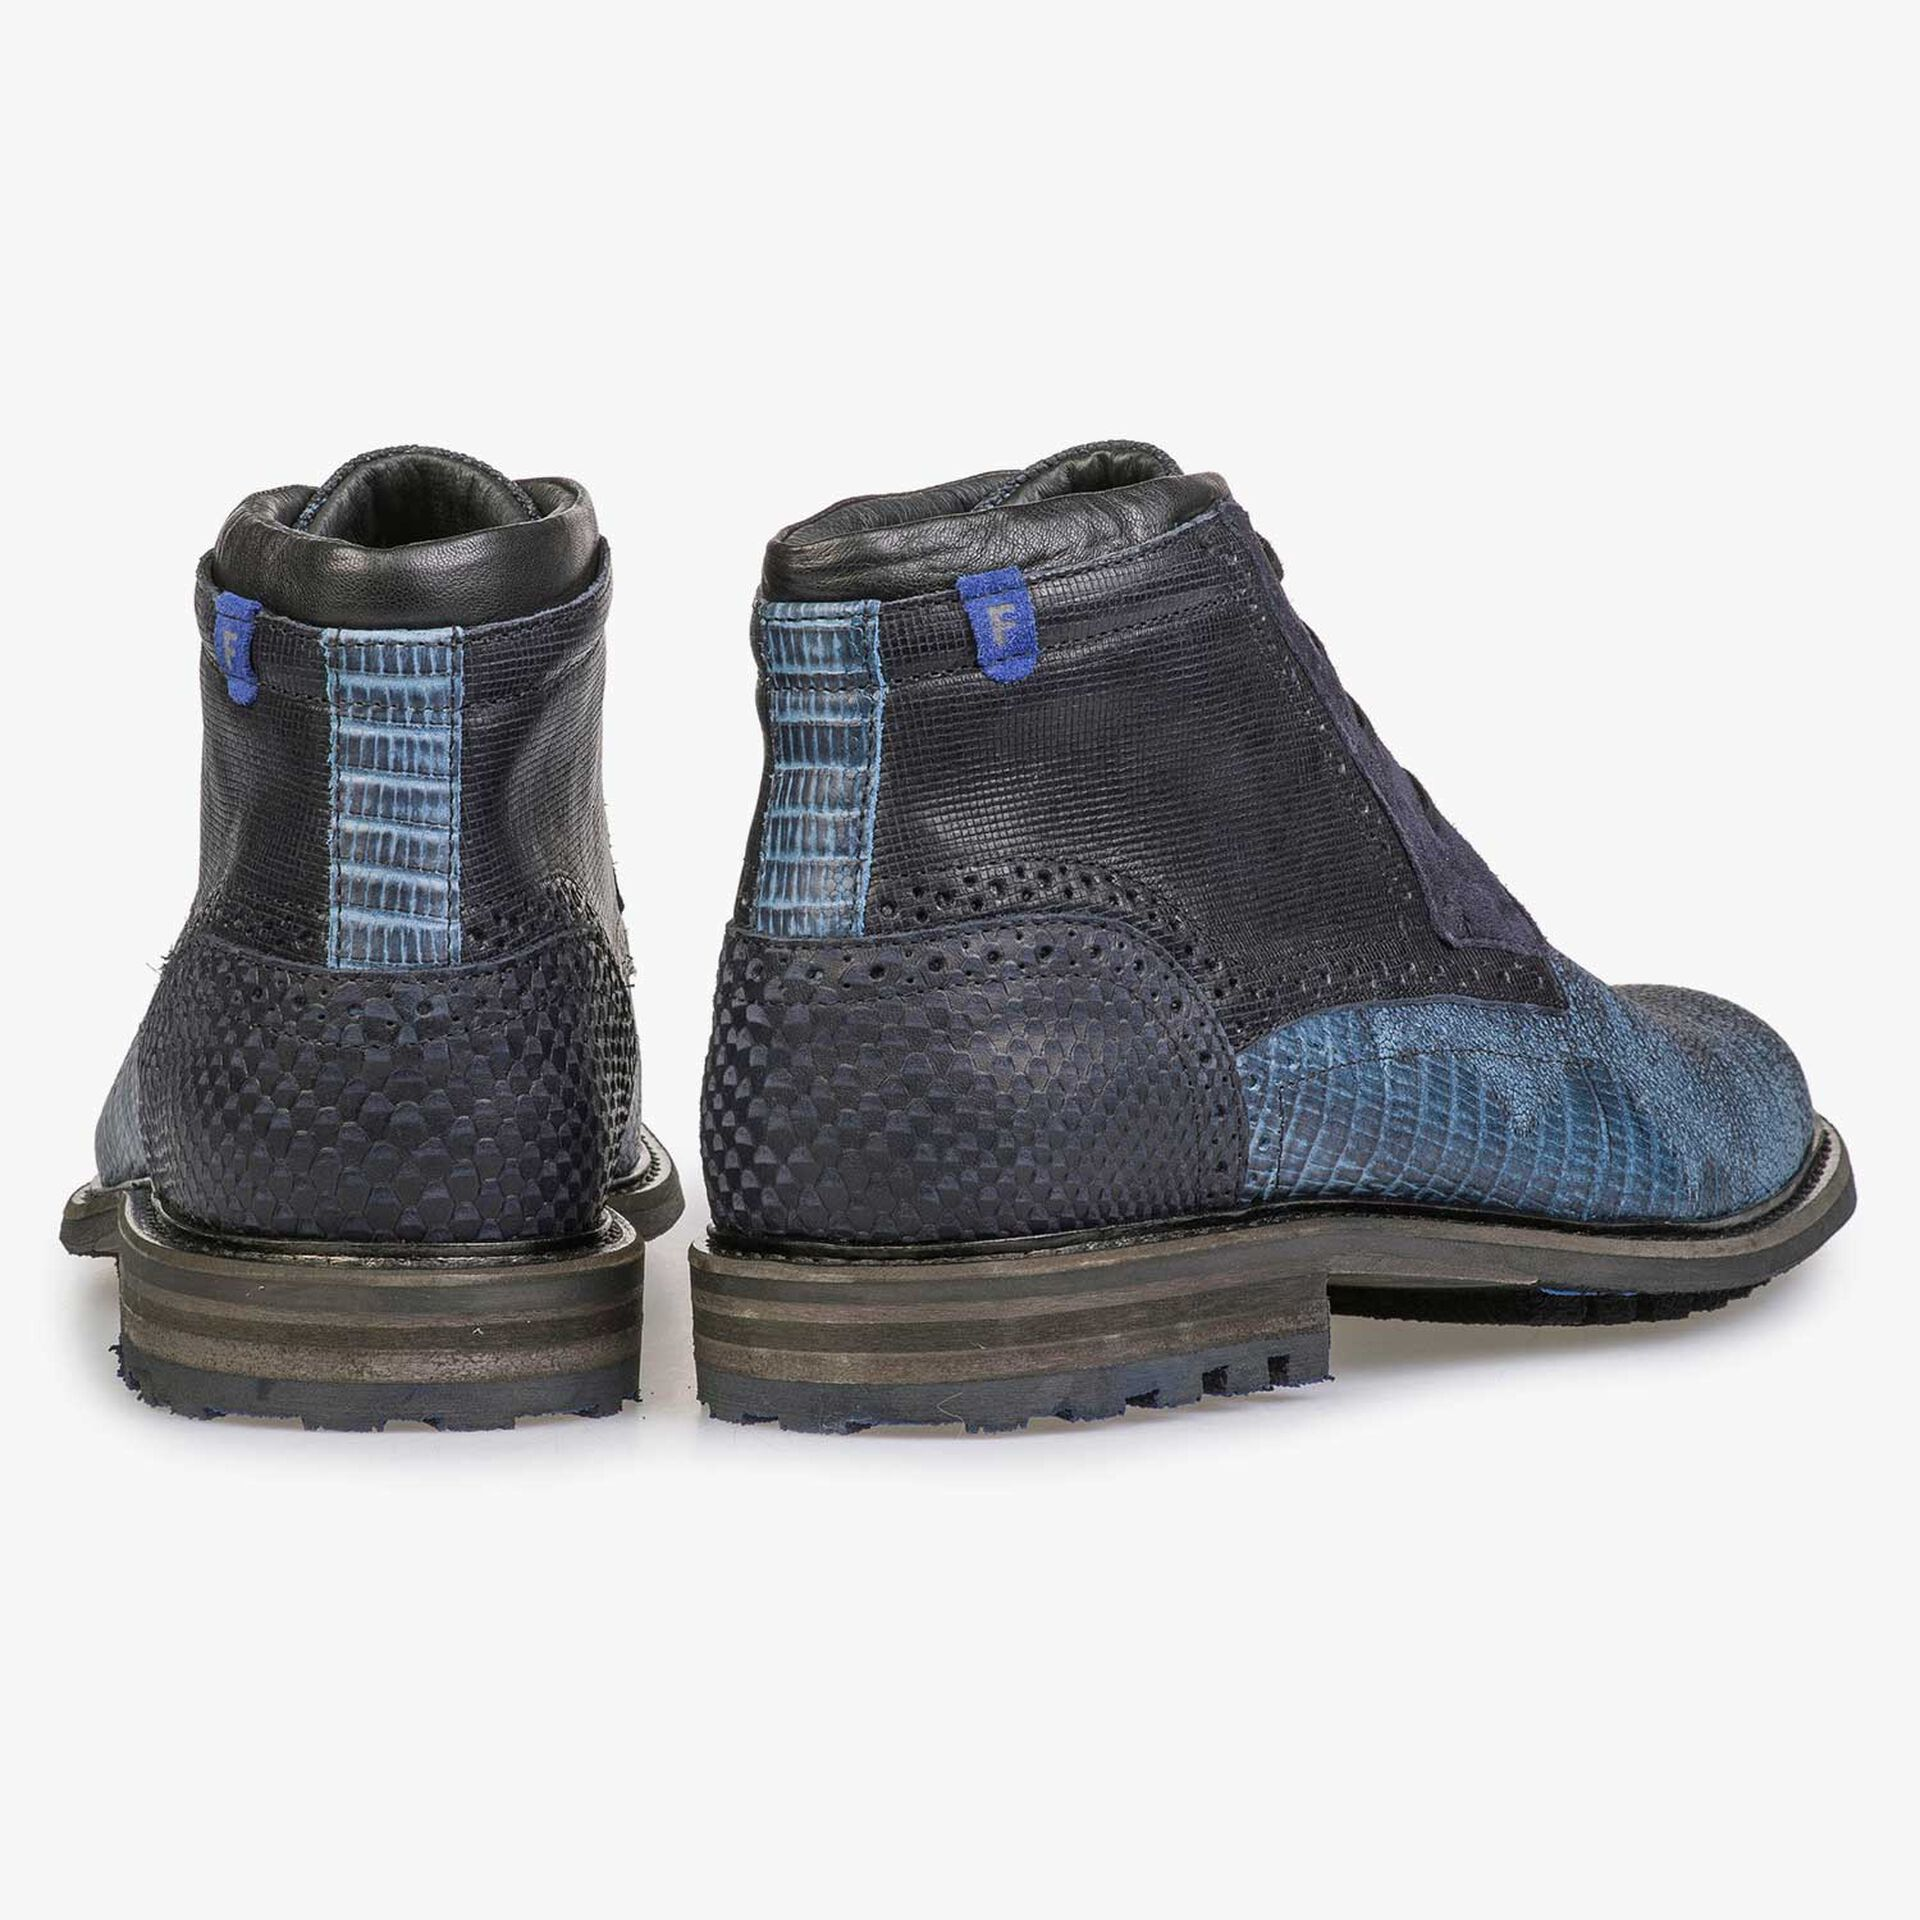 Blue leather lace boot with structural pattern